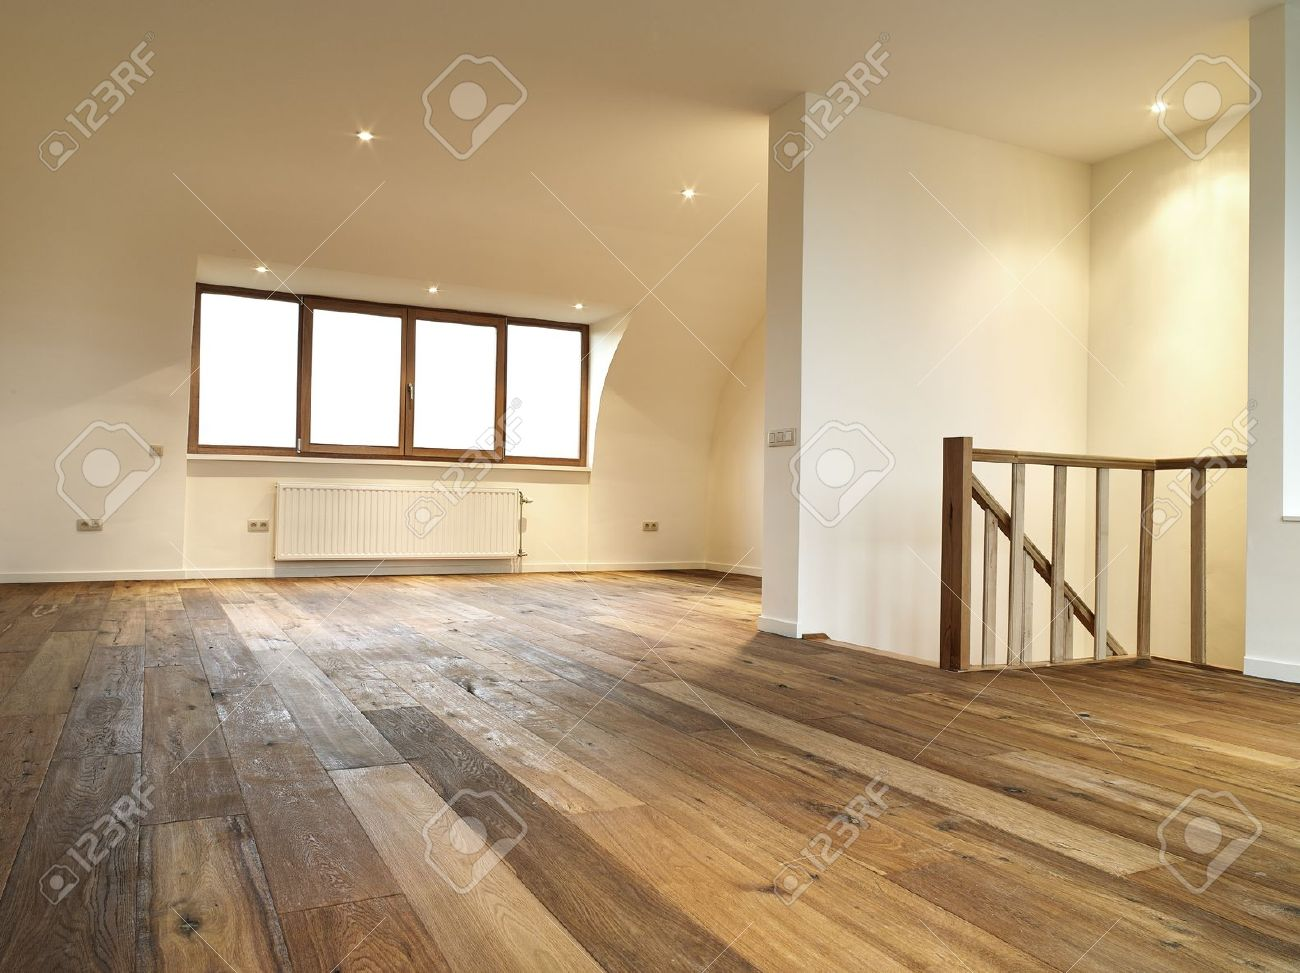 modern interior with wooden floor, there is a path for windows Standard-Bild - 16512462